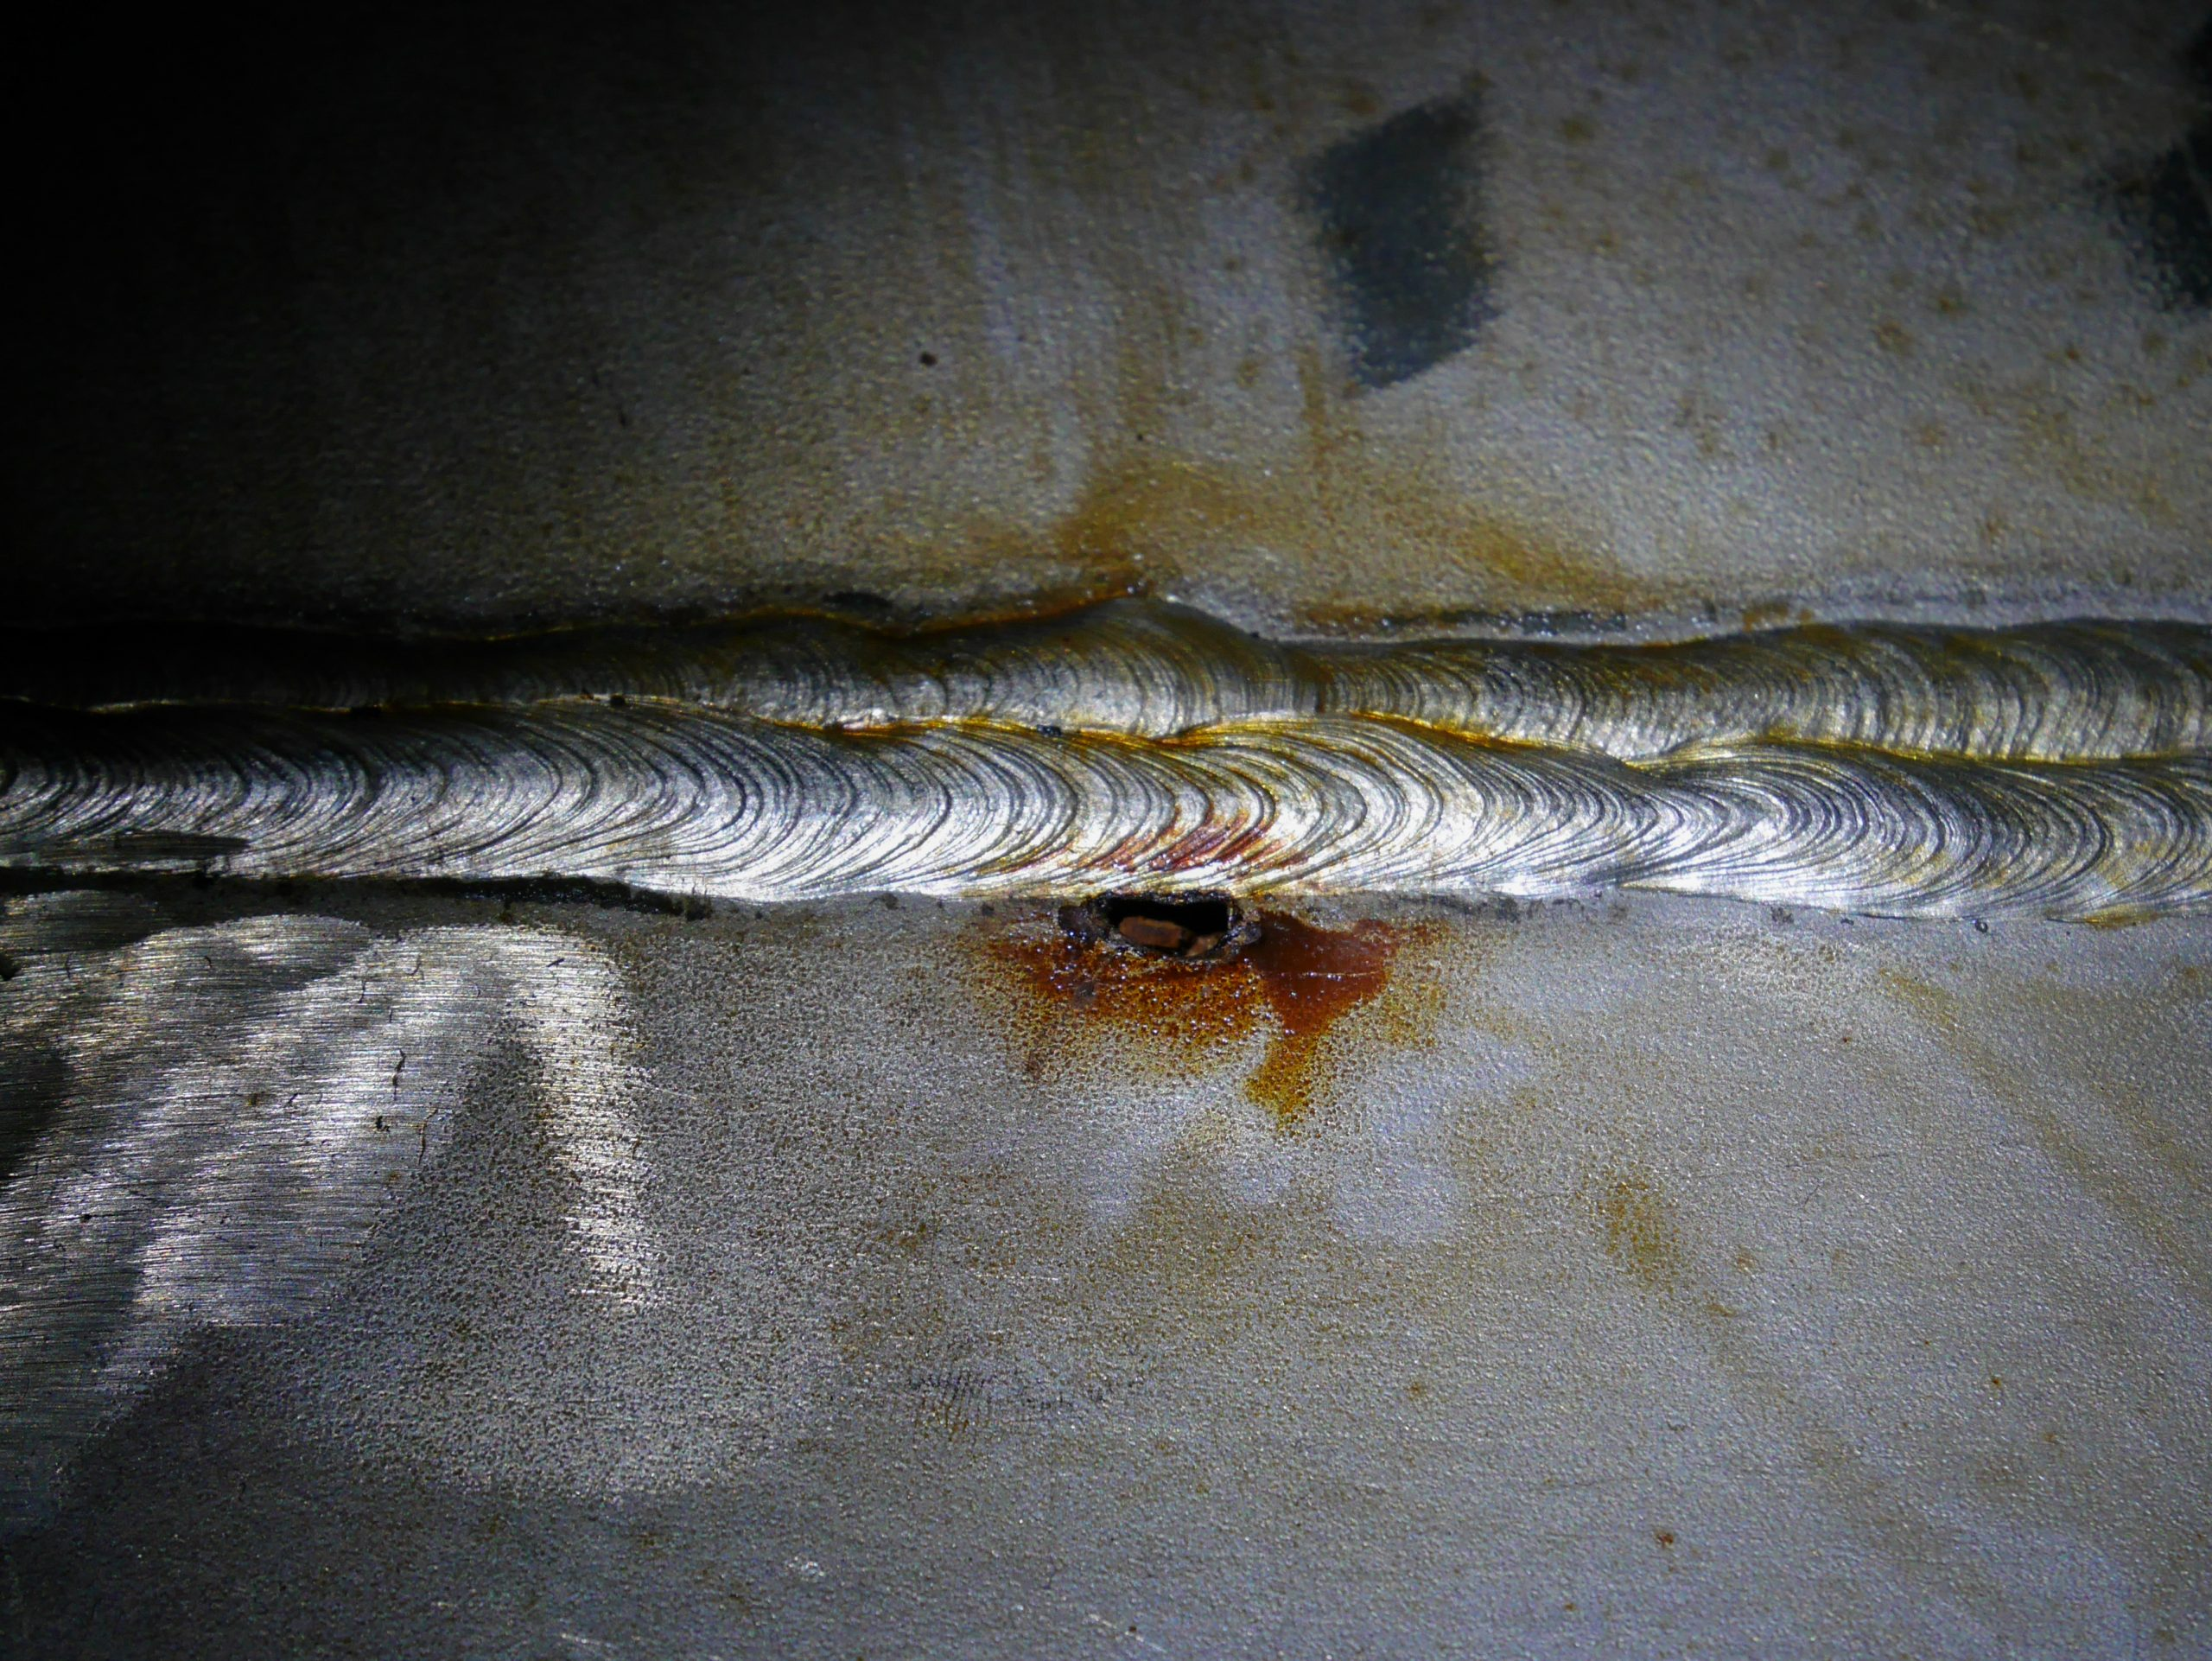 Corrosion,Of,Austenitic,Stainless,Steel,In,The,Form,Of,Isolated